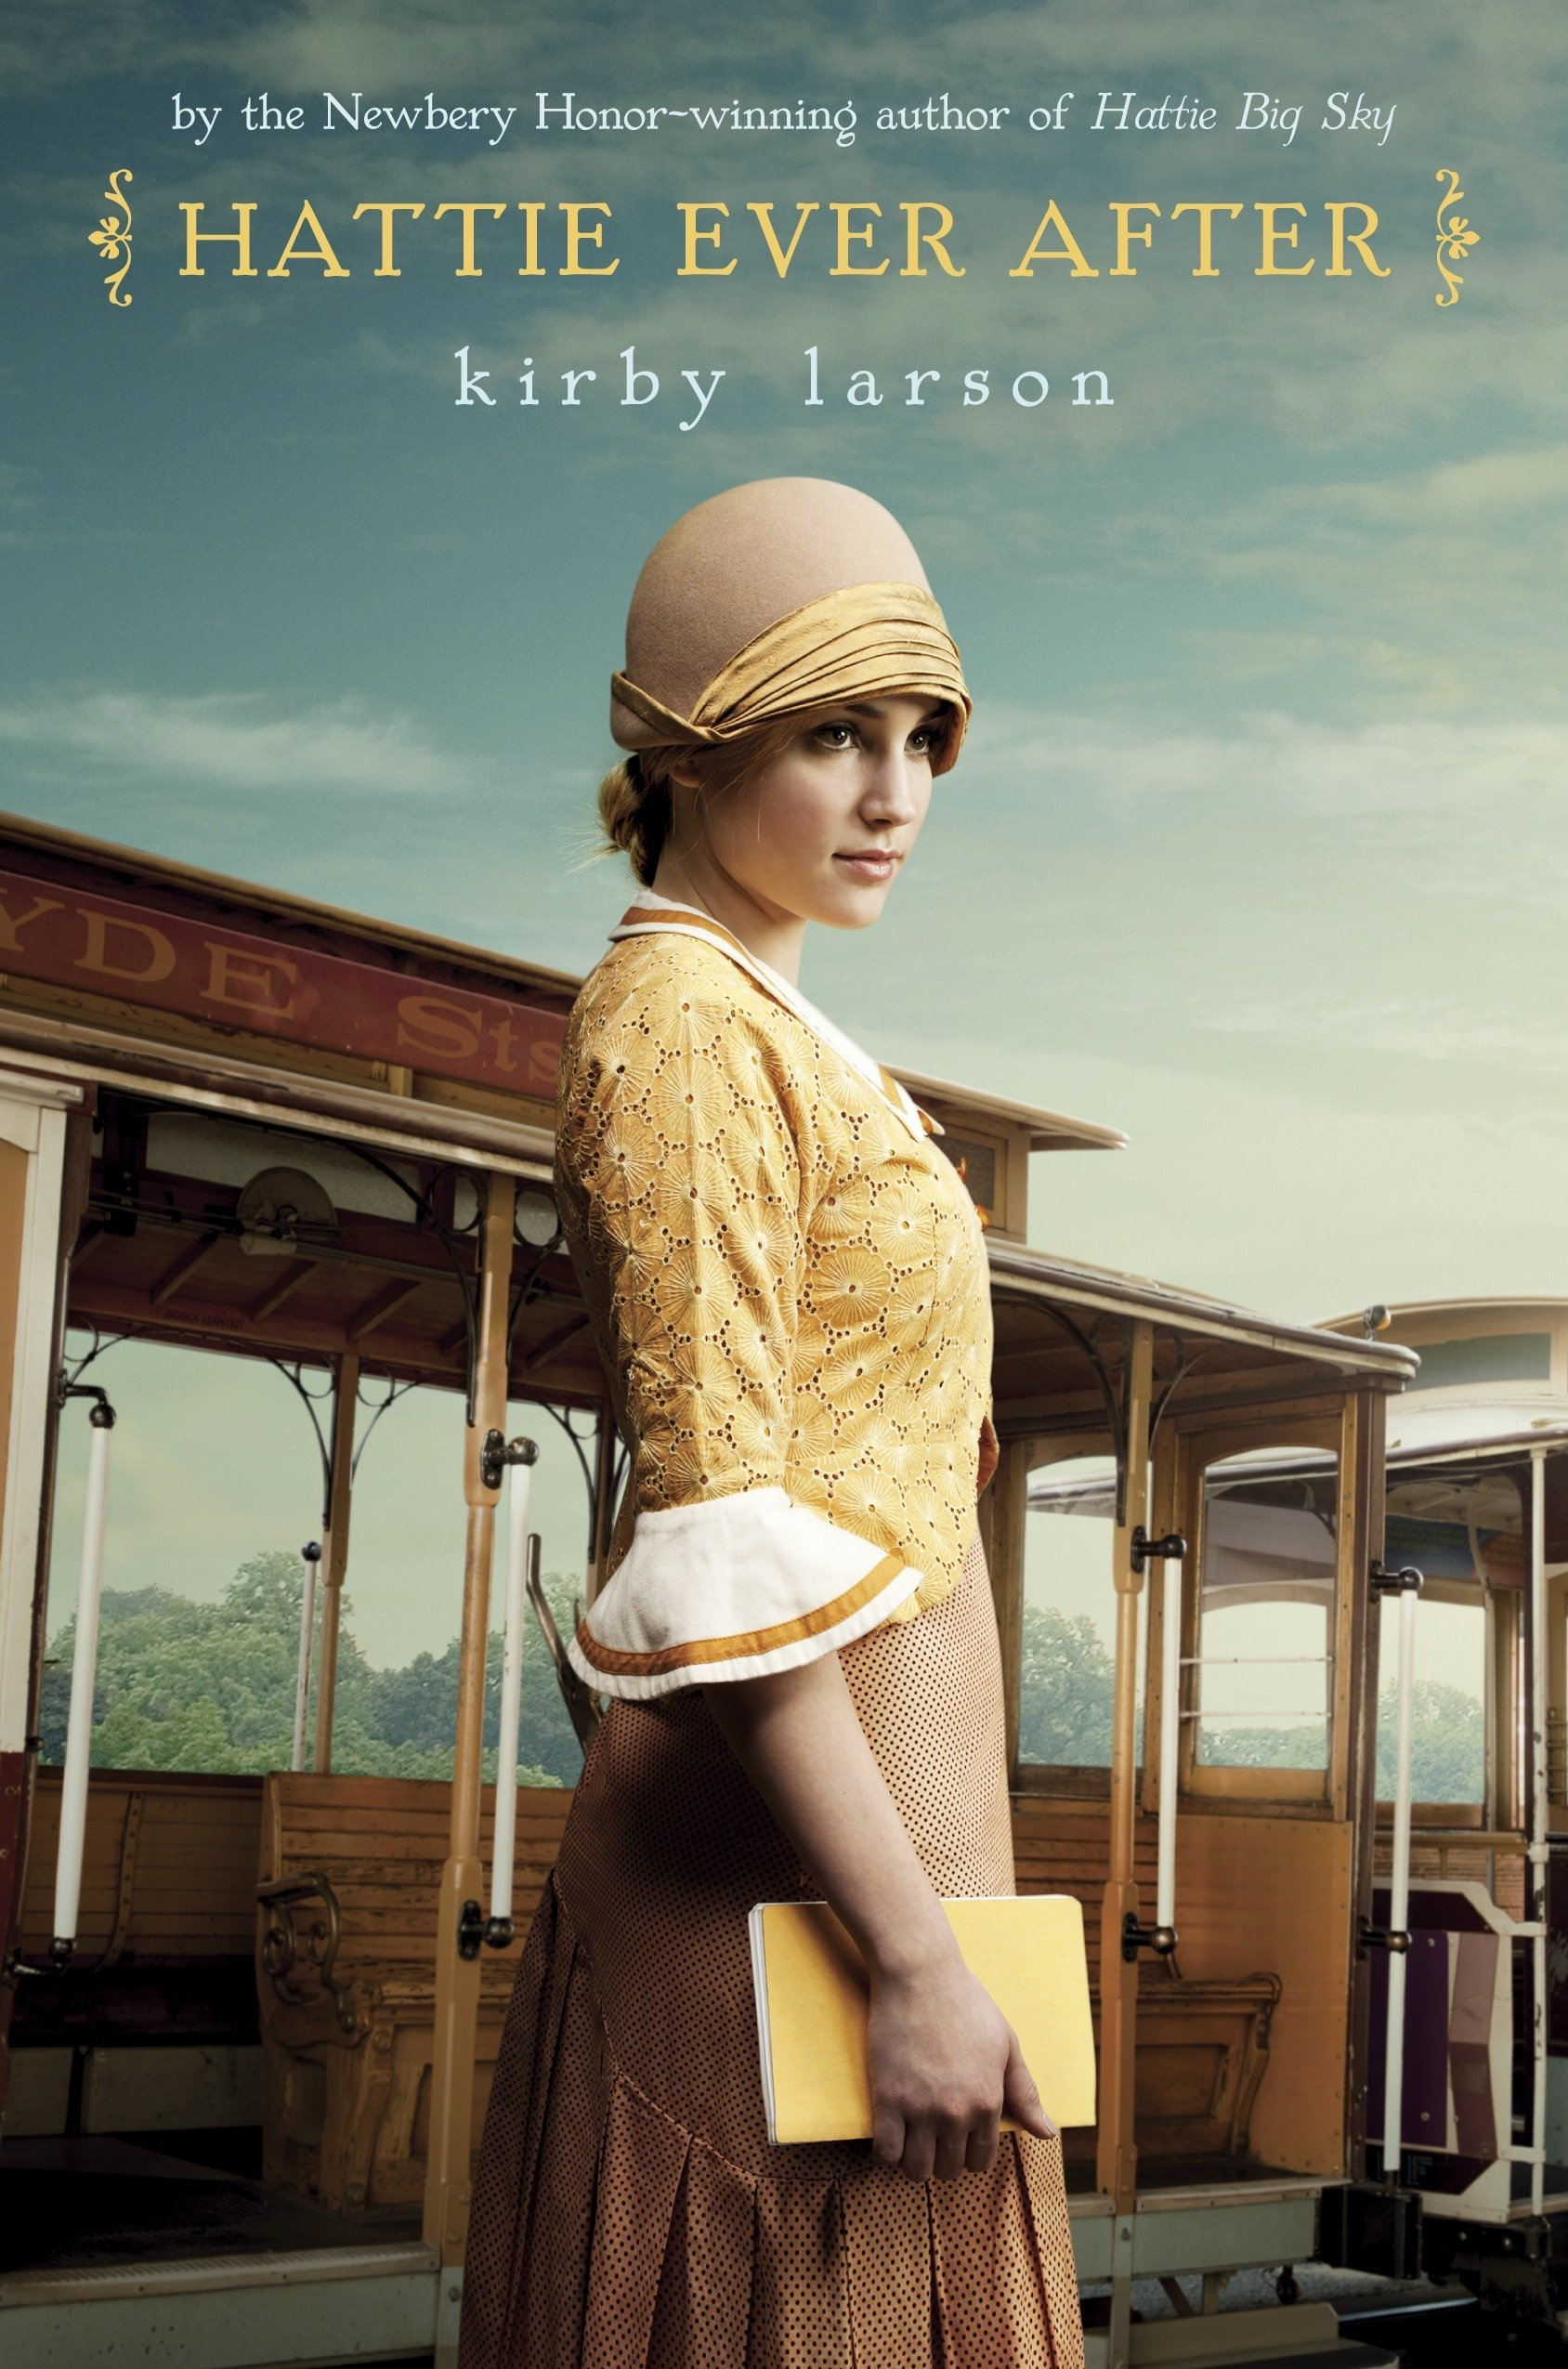 Image of hattie Ever After book cover